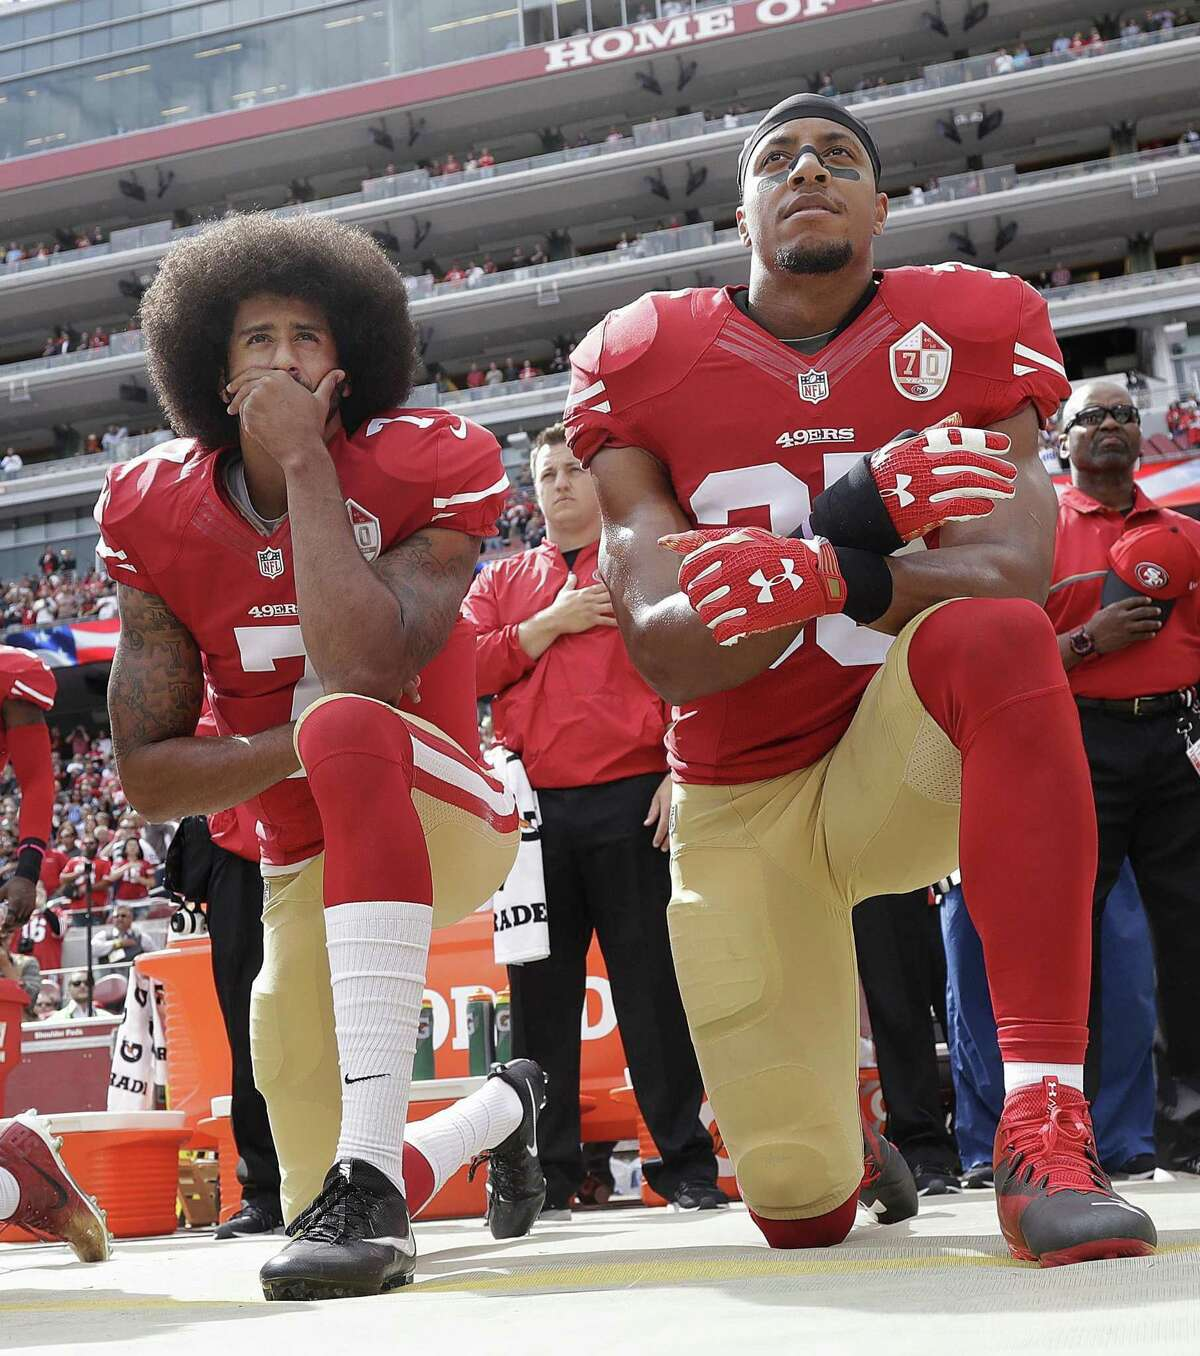 San Francisco 49ers quarterback Colin Kaepernick, left, and safety Eric Reid kneel during the national anthem before an NFL football game in 2016.